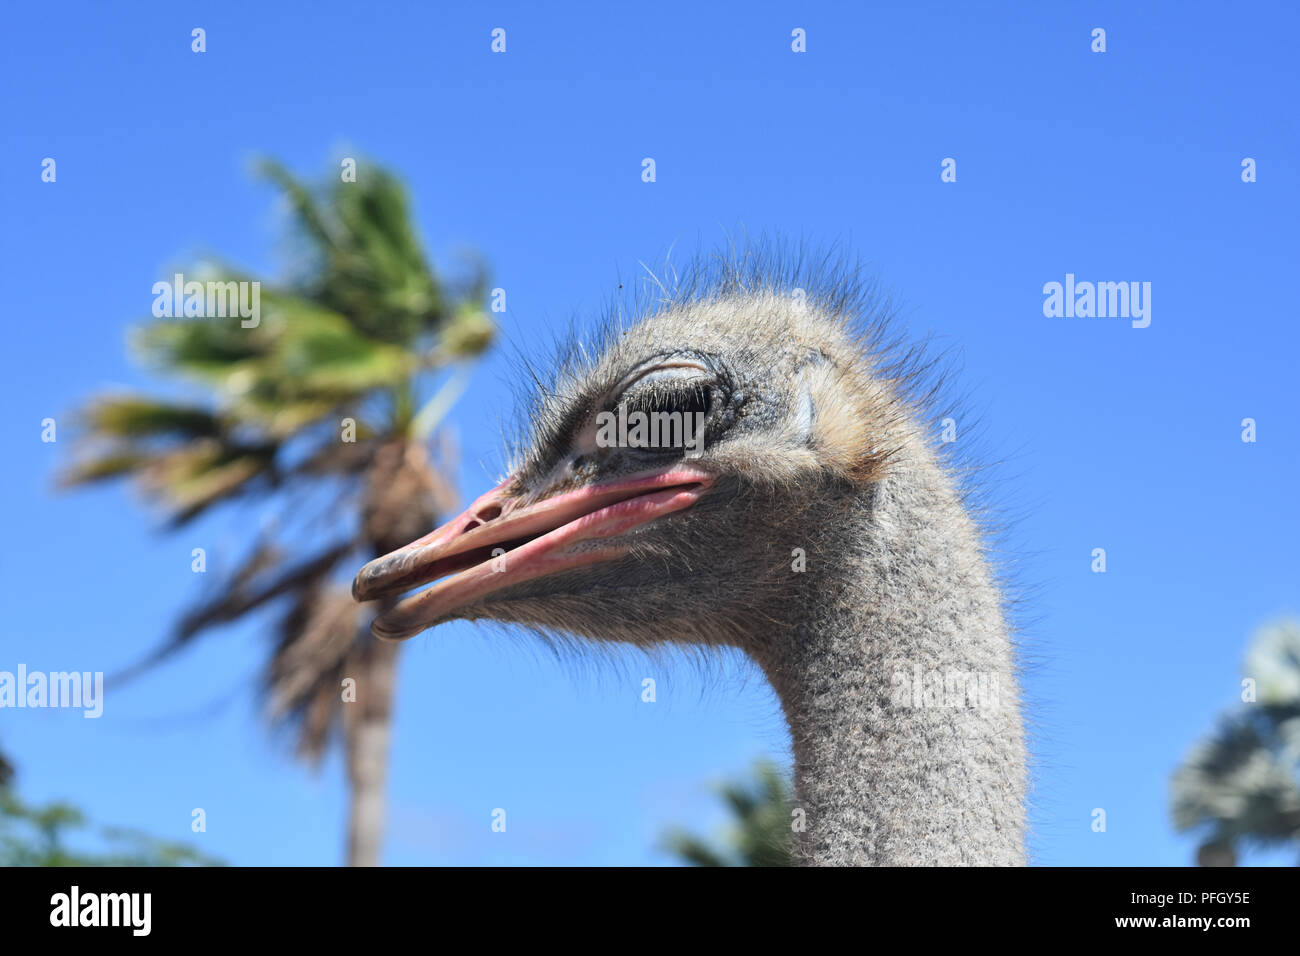 Common ostrich with a dark pink beak. Stock Photo